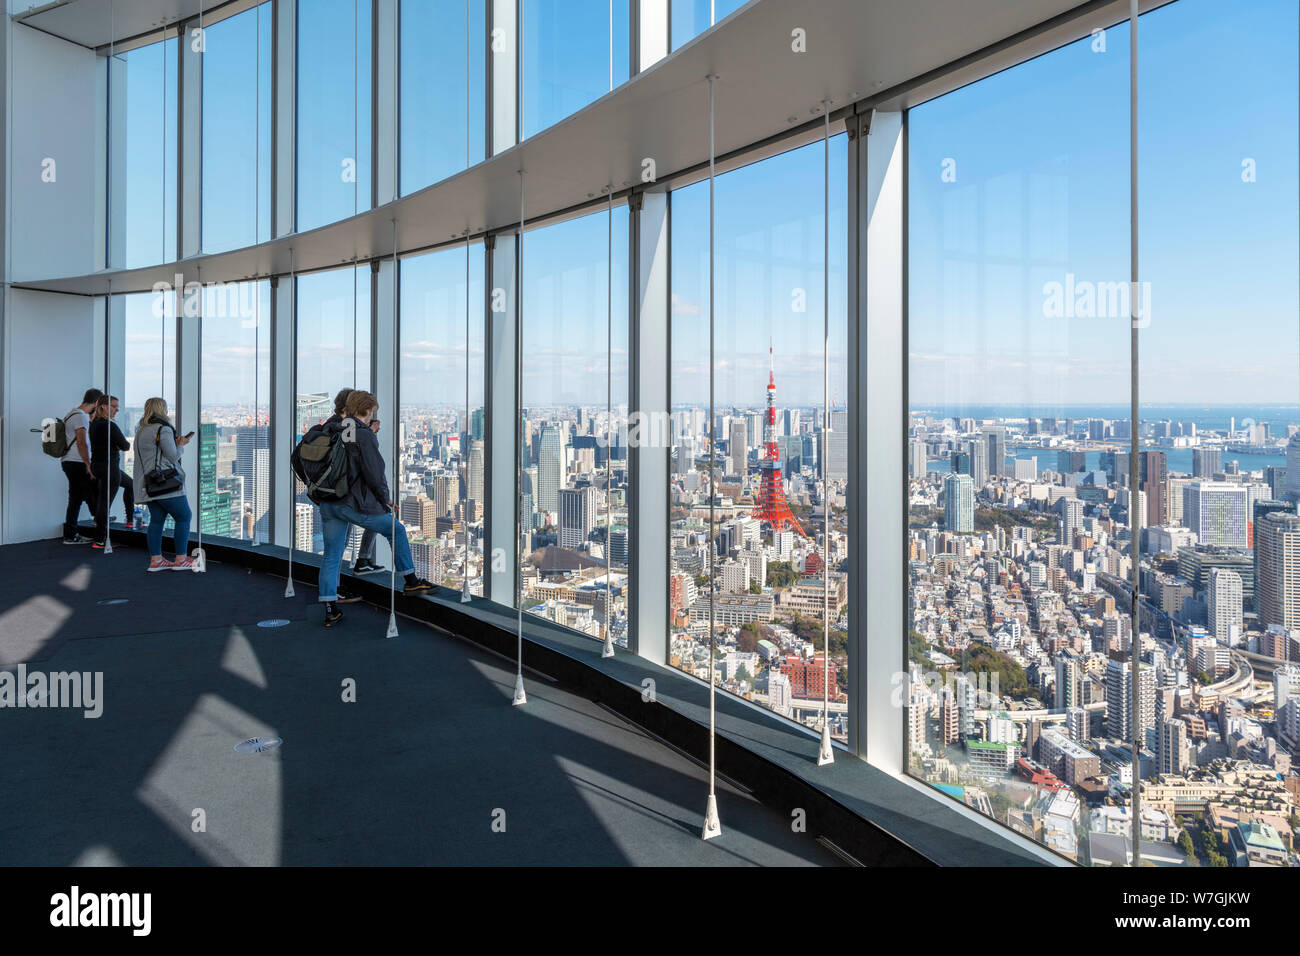 Visitors looking out over the city from the observation deck of the Mori Tower, Roppongi Hills, Tokyo, Japan Stock Photo